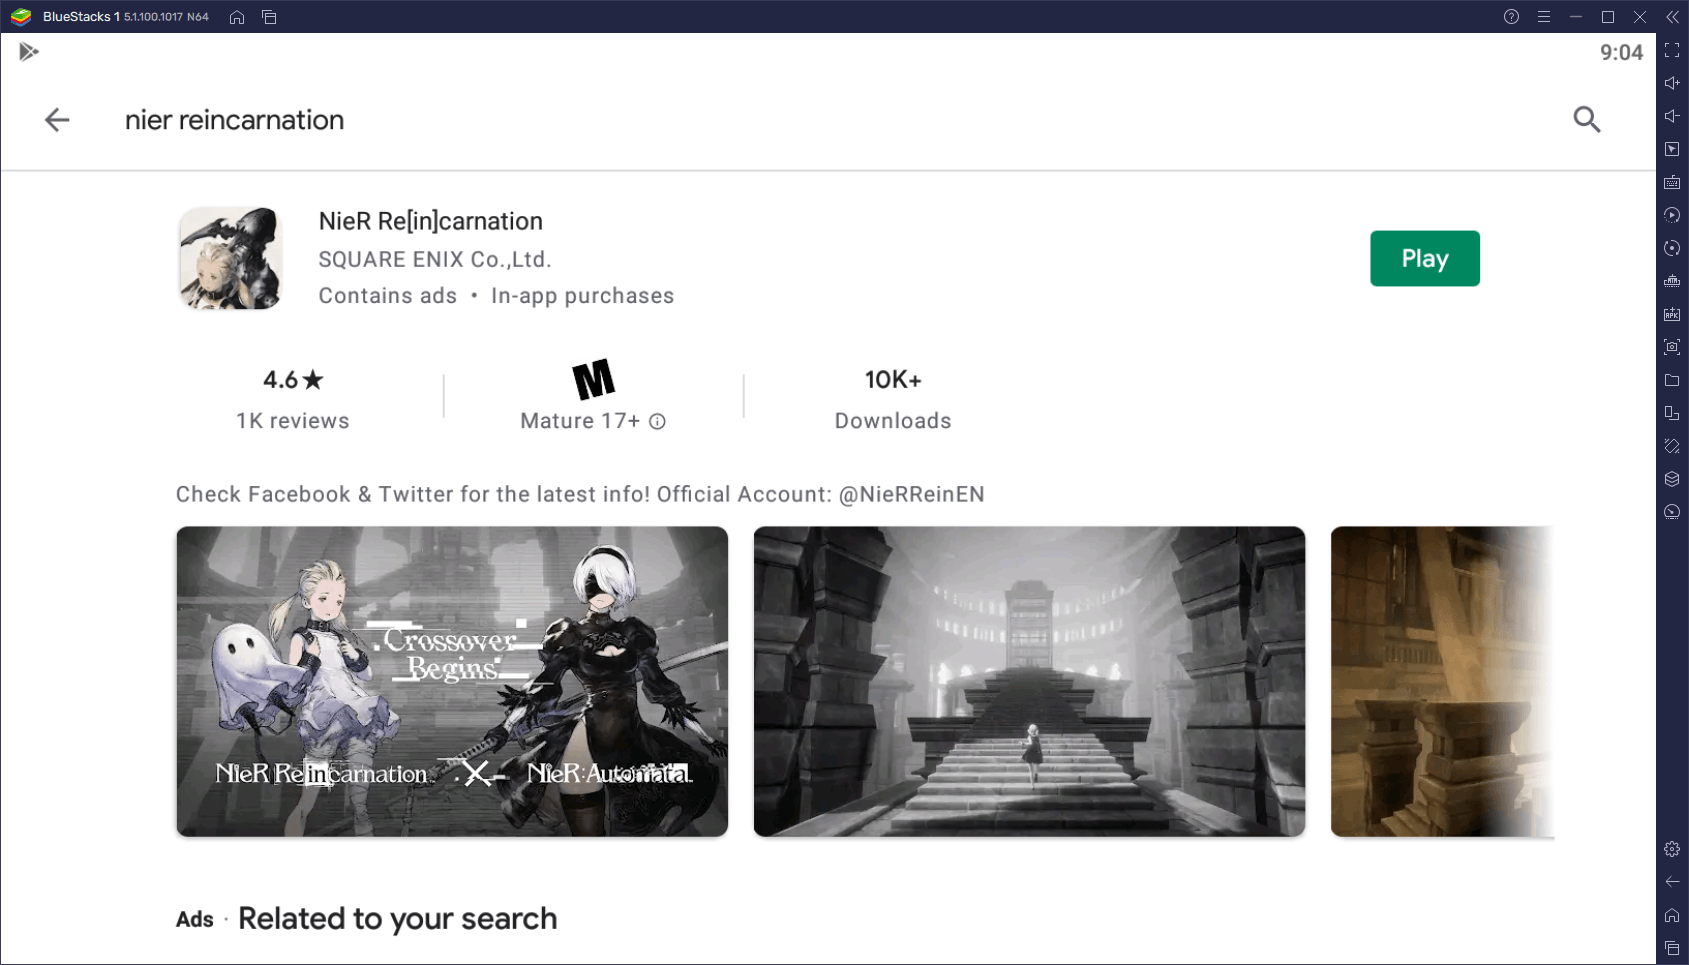 NieR Reincarnation – How to Play the New NieR Mobile Game on Your Computer